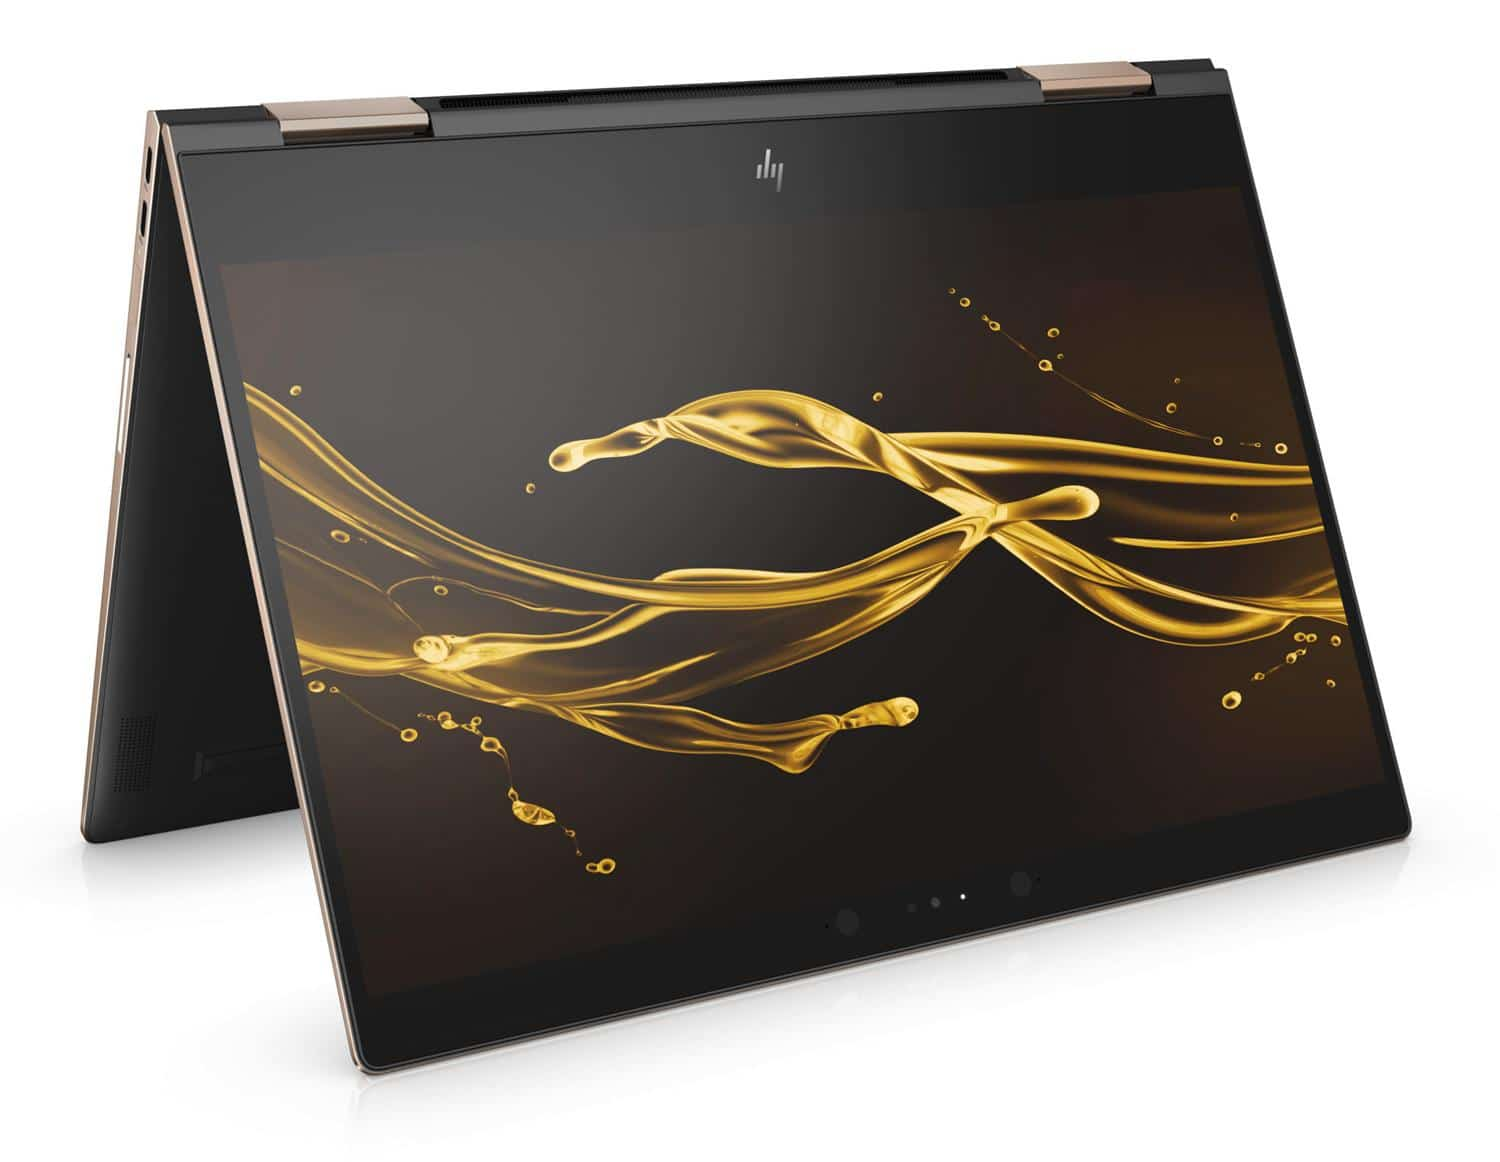 HP Spectre x360 13-ae001nf, 13 pouces tablette i5 Kaby Refresh IPS SSD à 1259€